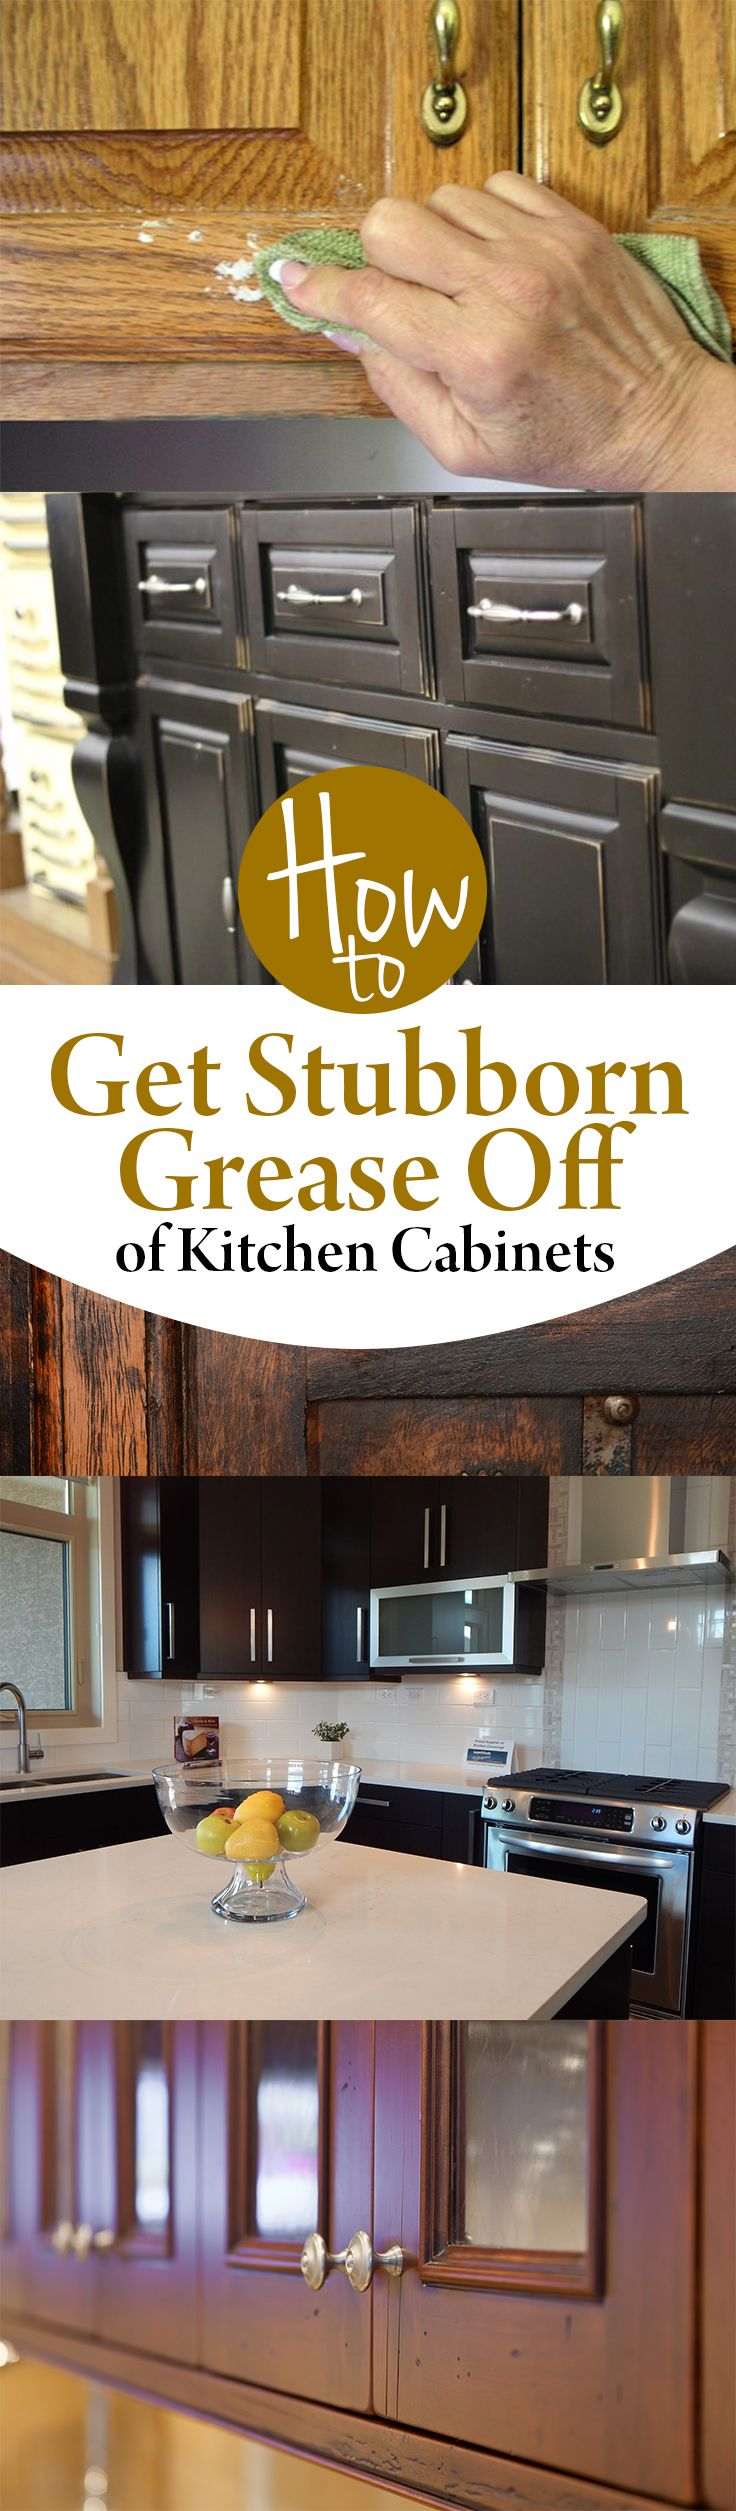 How To Get Stubborn Grease Off Of Kitchen Cabinets Wrapped In Rust Clean Kitchen Cabinets Kitchen Cabinets Wrapped Clean Kitchen